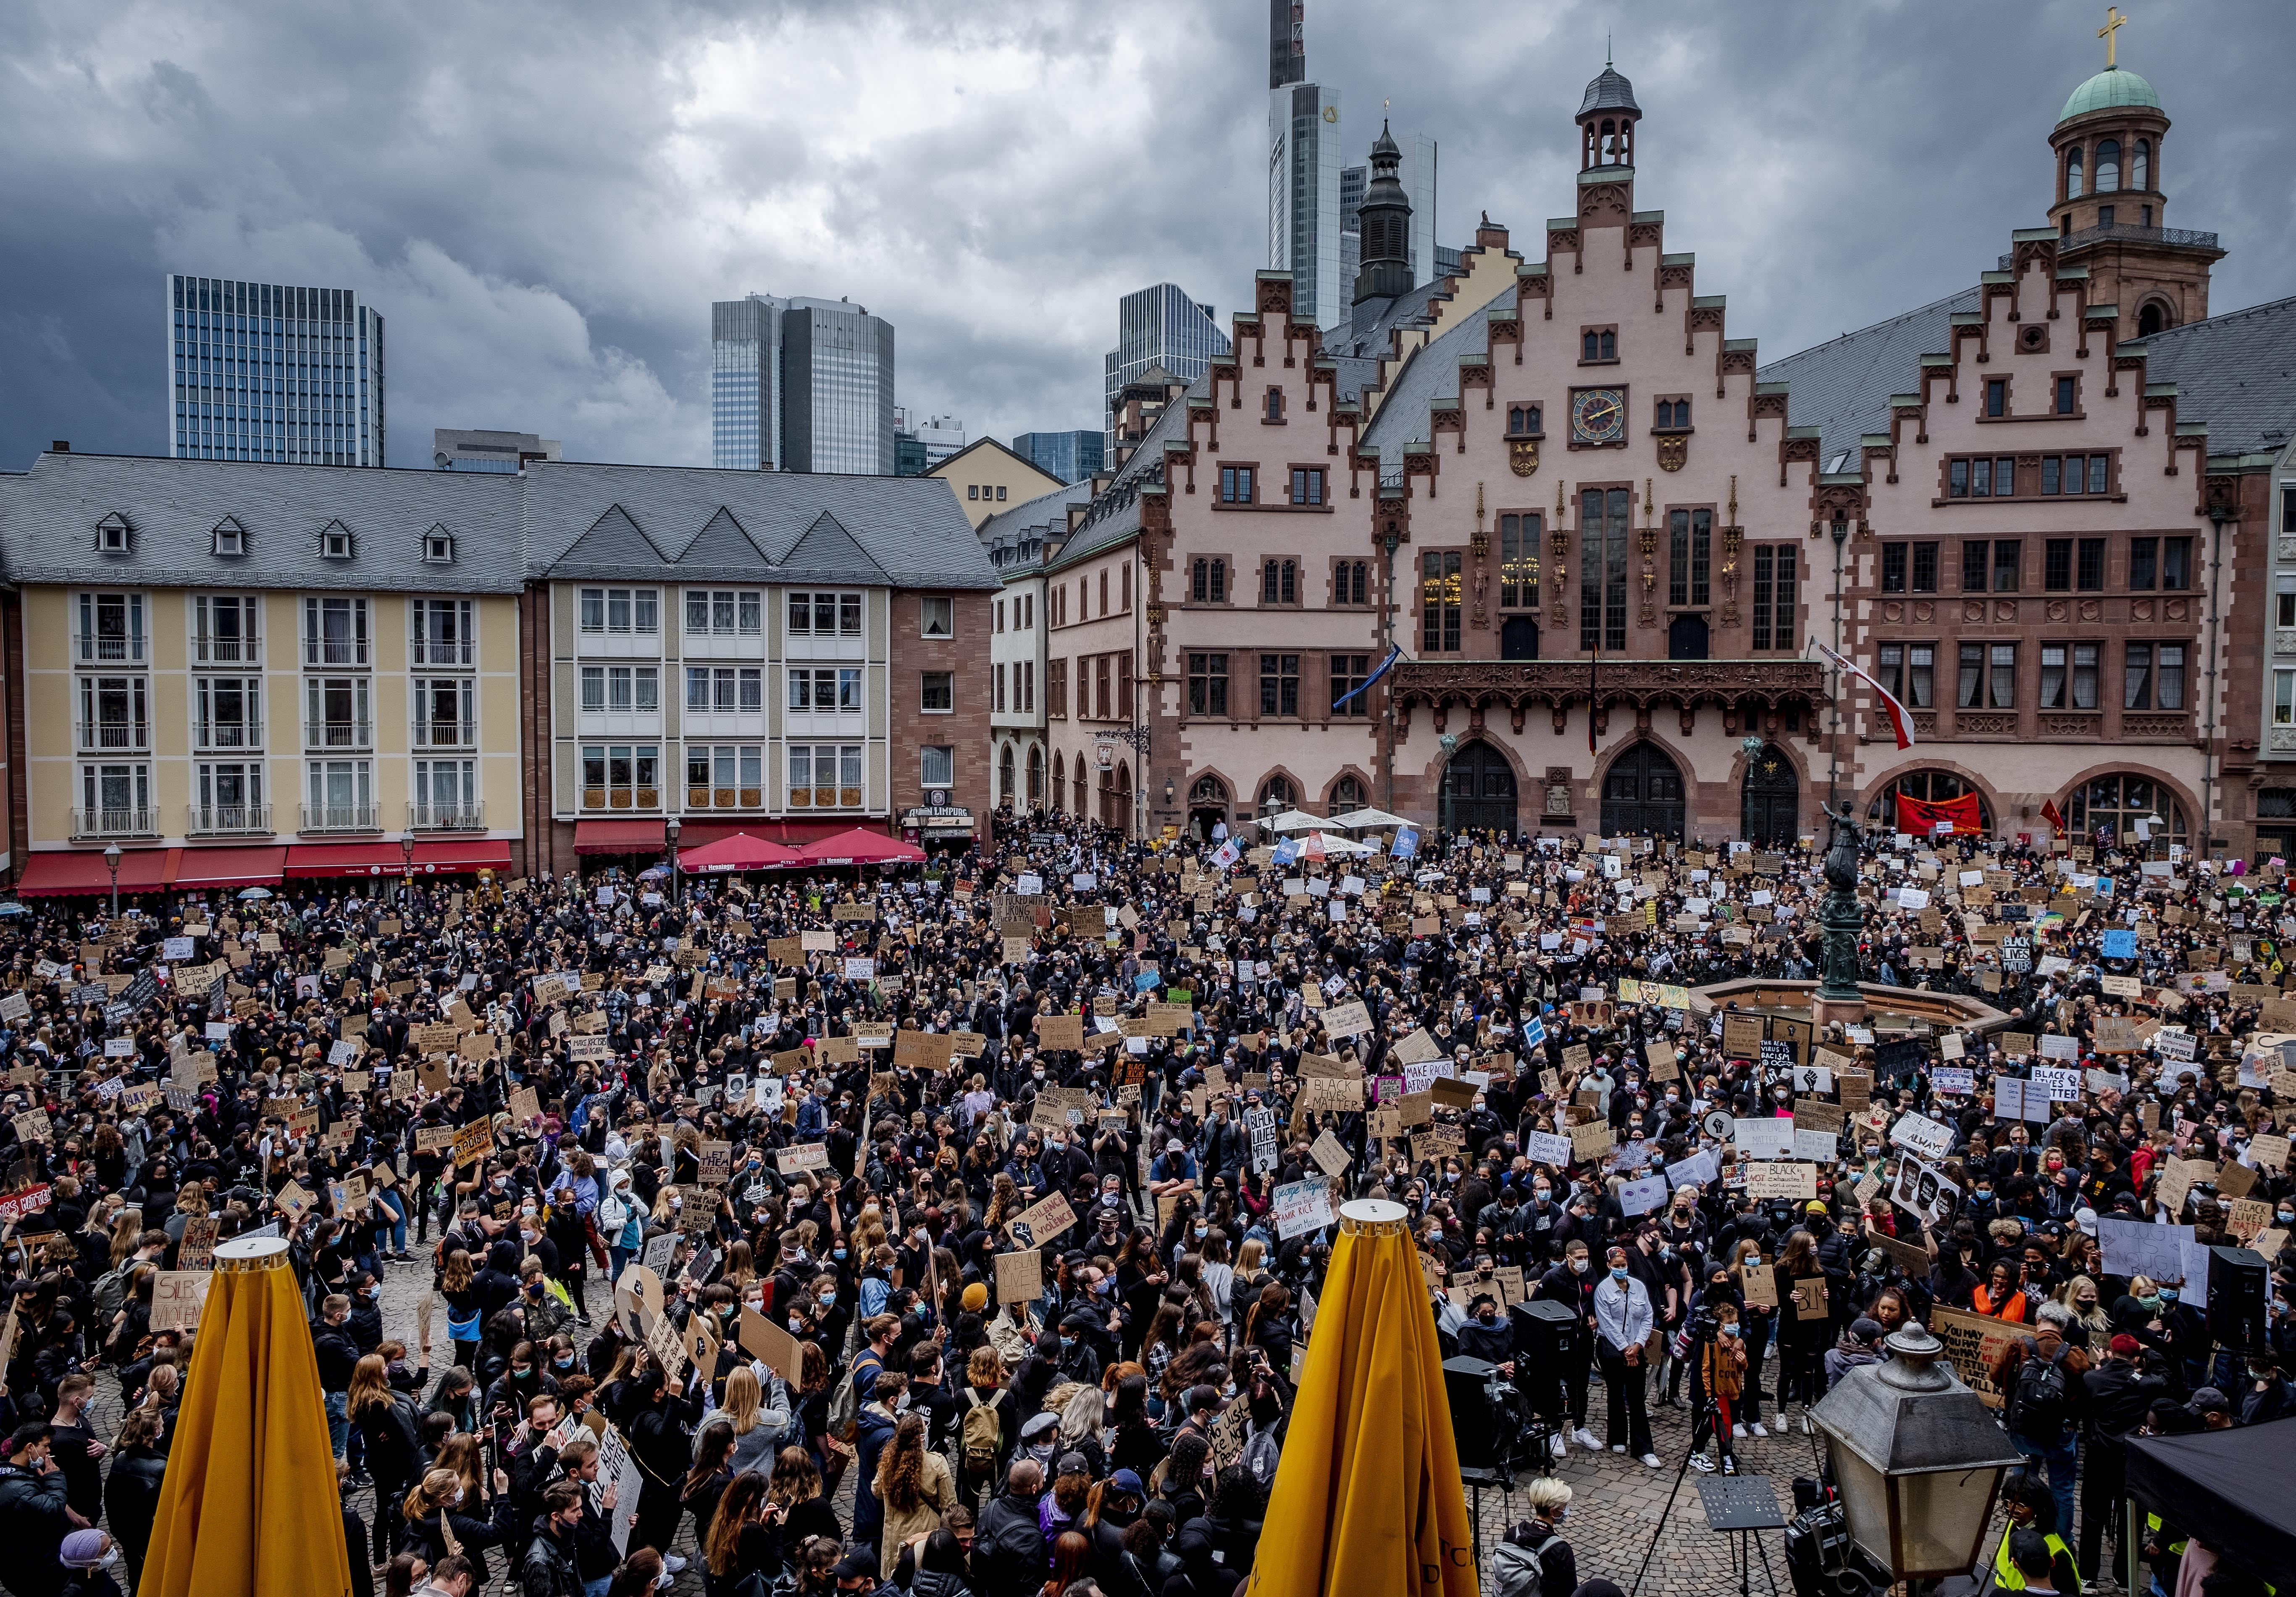 Hundreds of people attend a rally in Frankfurt, Germany, June 6, 2020, over the death of George Floyd, a black man who died after being restrained by Minneapolis police officers on May 25.